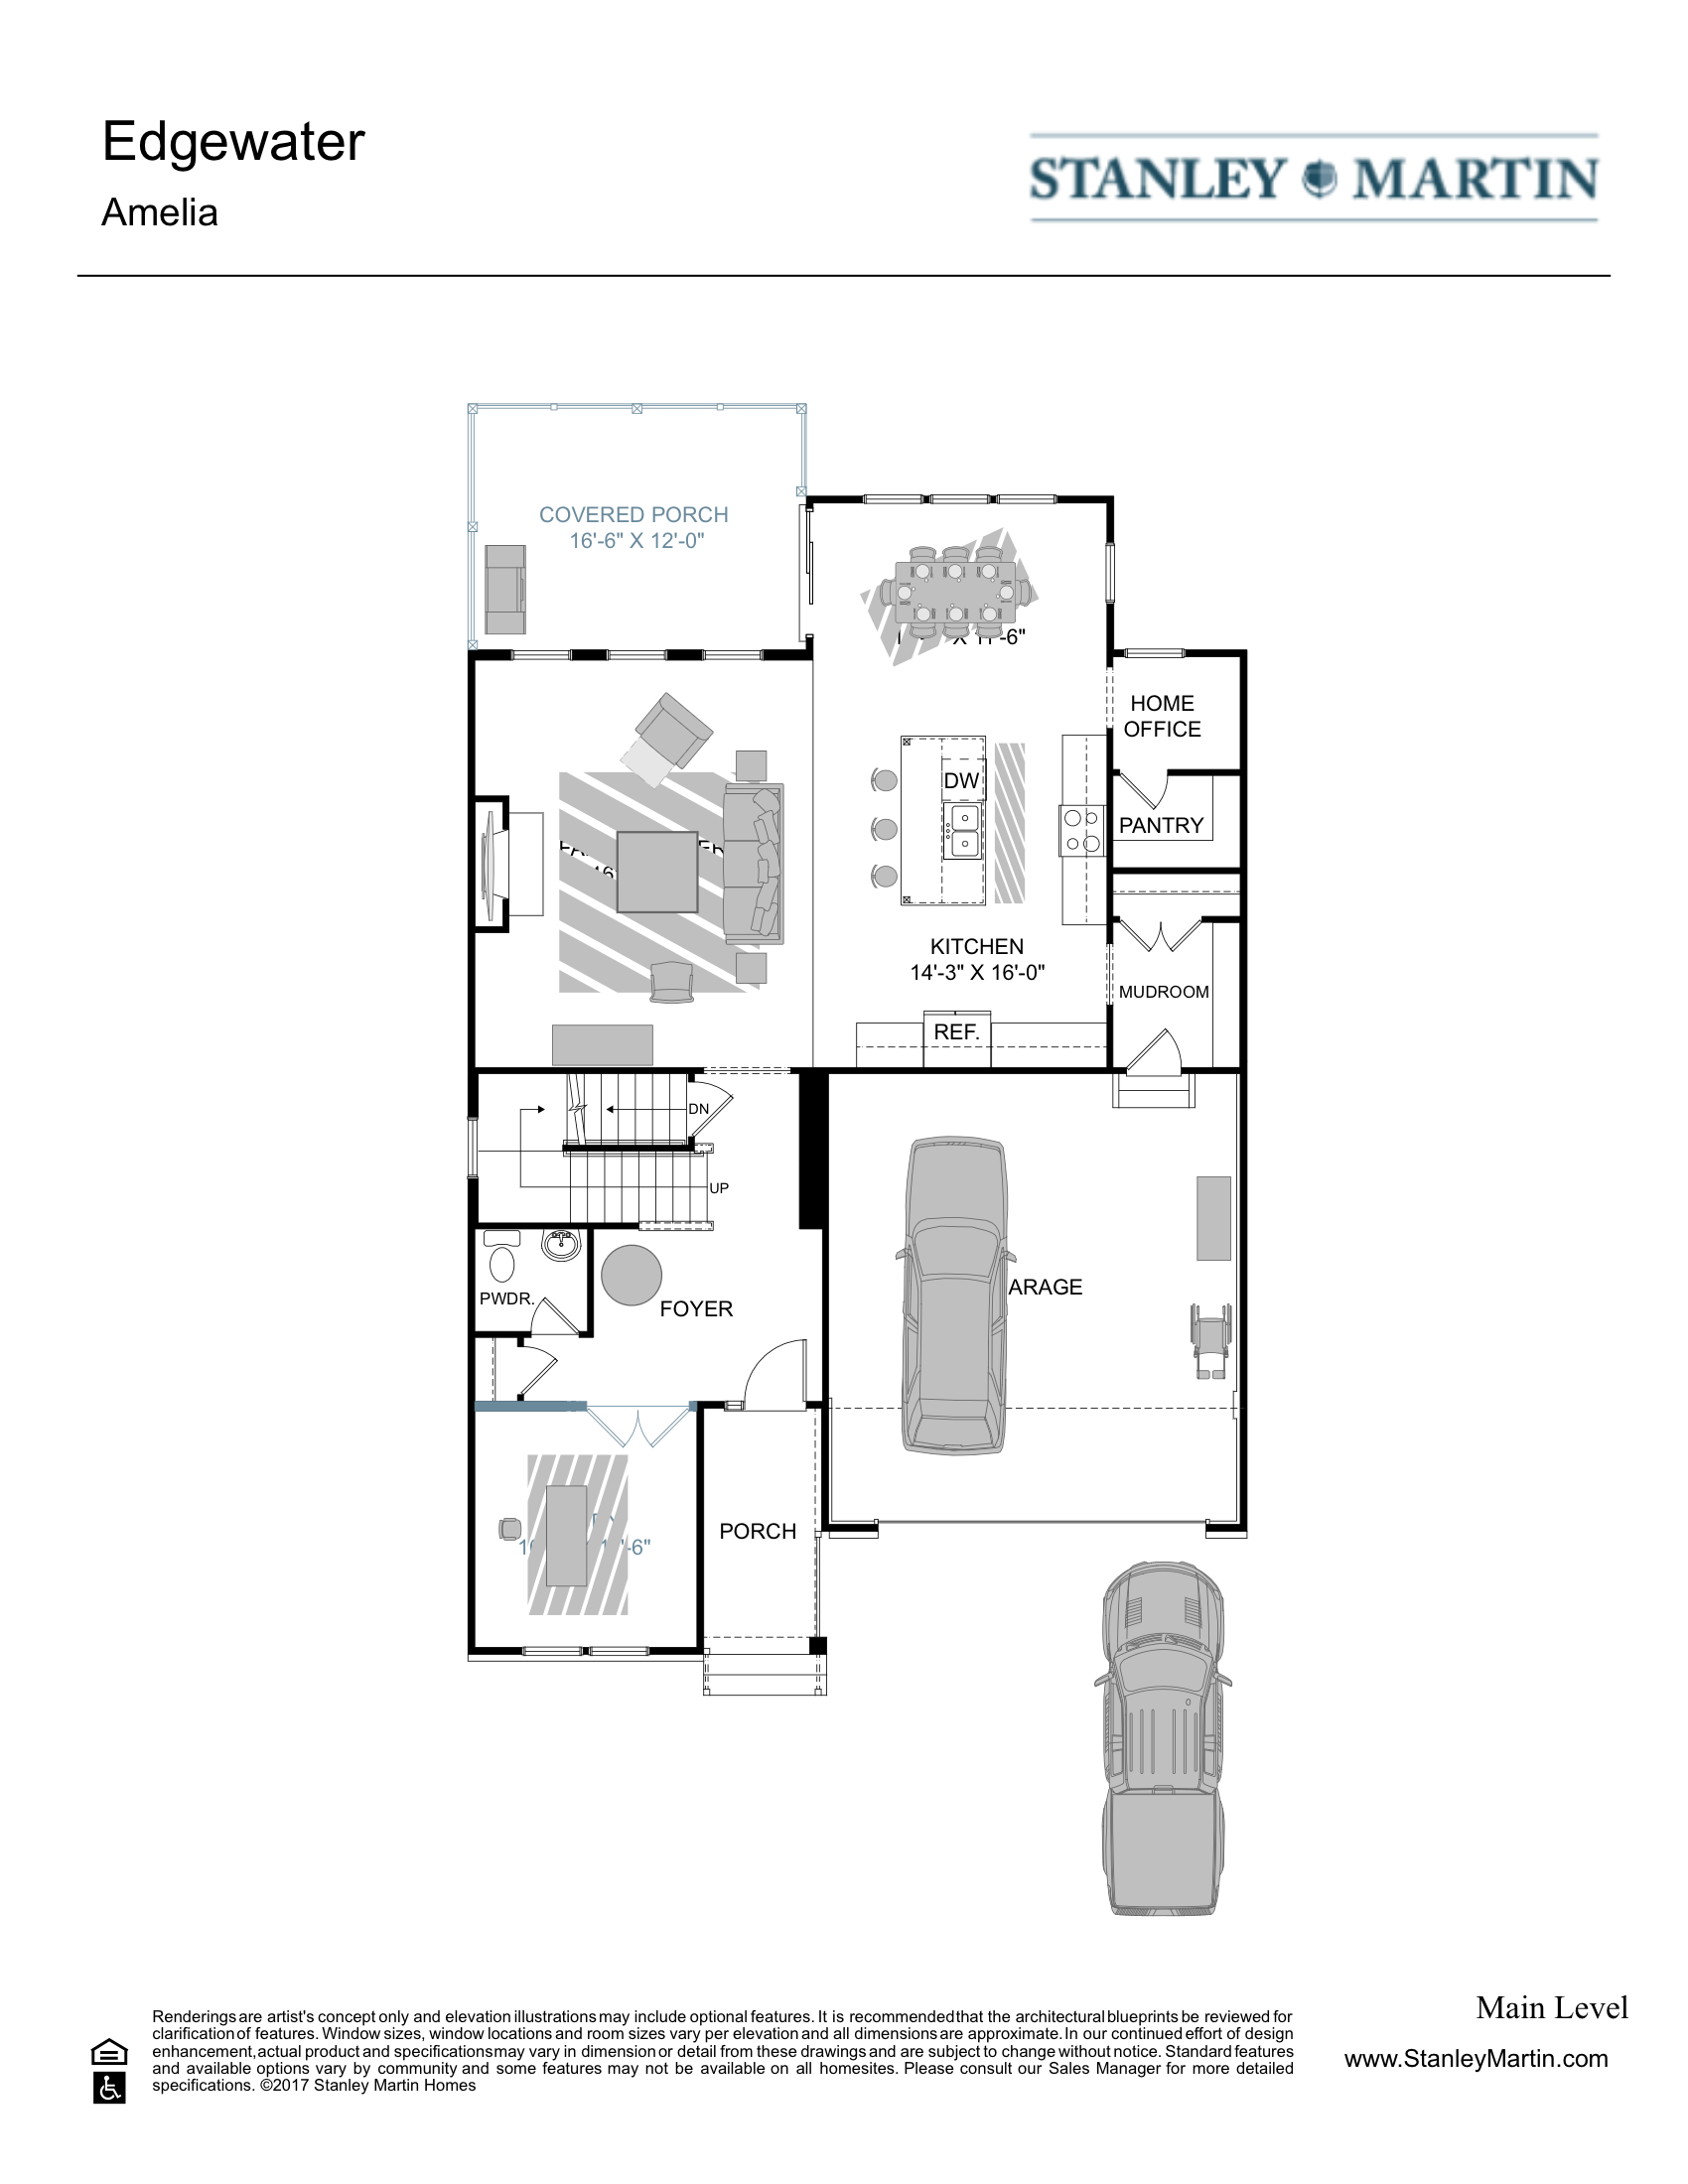 My Customized Amelia Interactive Floorplan Floor Plans Interactive Edgewater